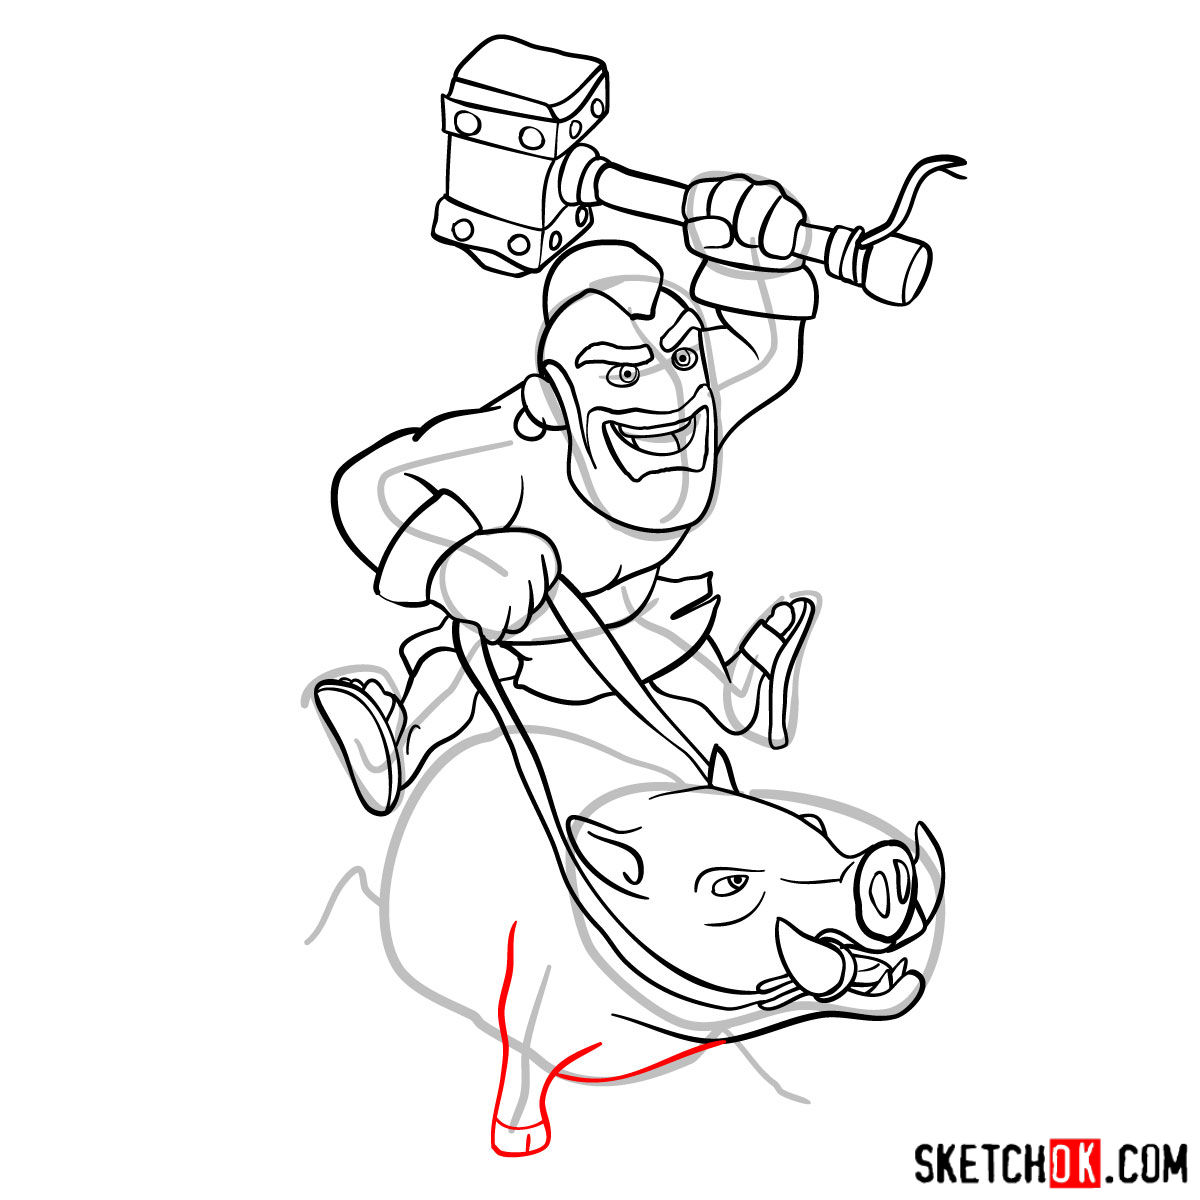 How to draw Hog Rider from Clash of Clans - step 12